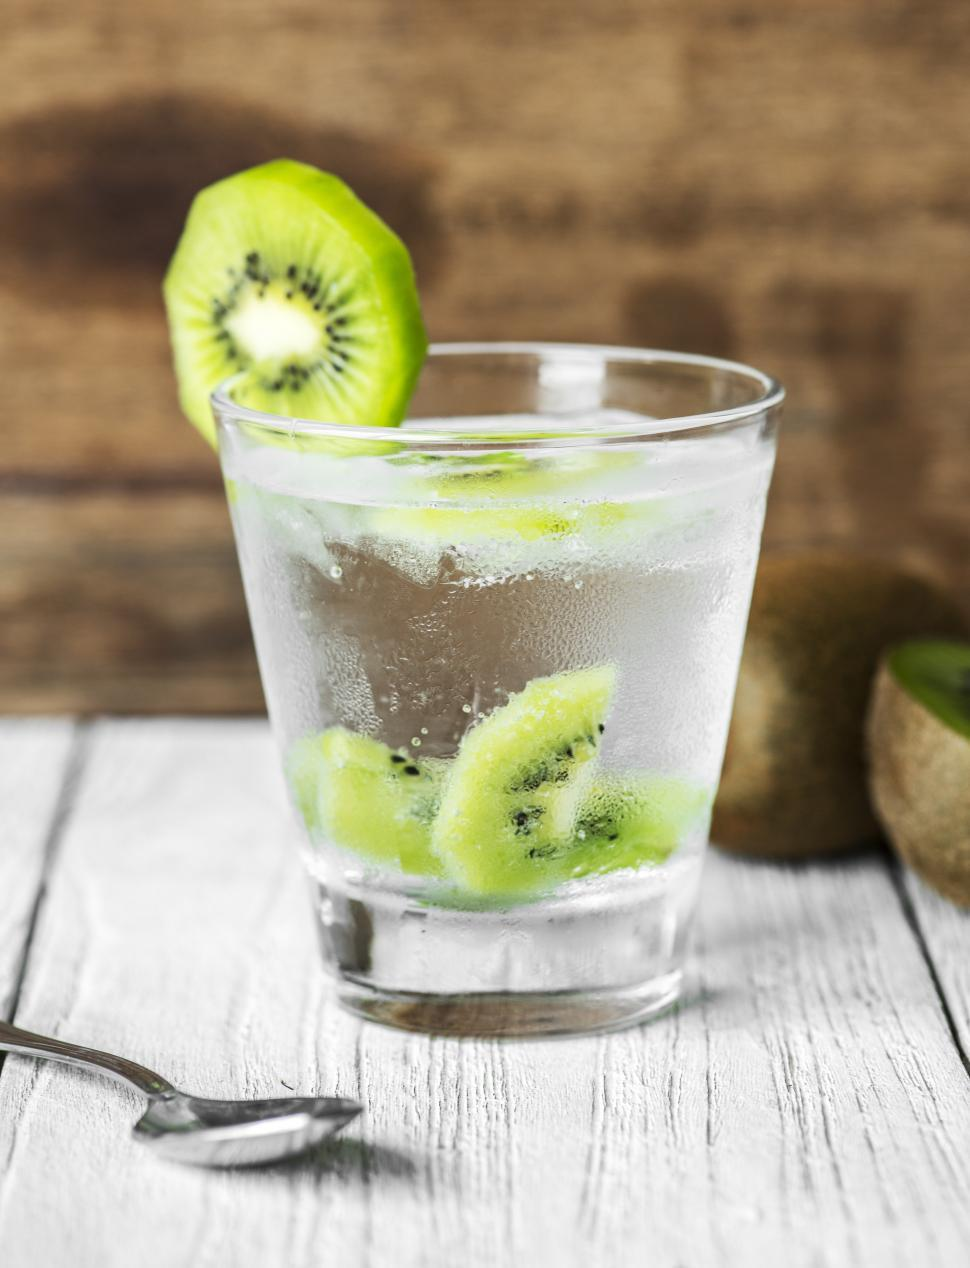 Download Free Stock HD Photo of Close up of a clear glass of beverage garnished with kiwi slices Online